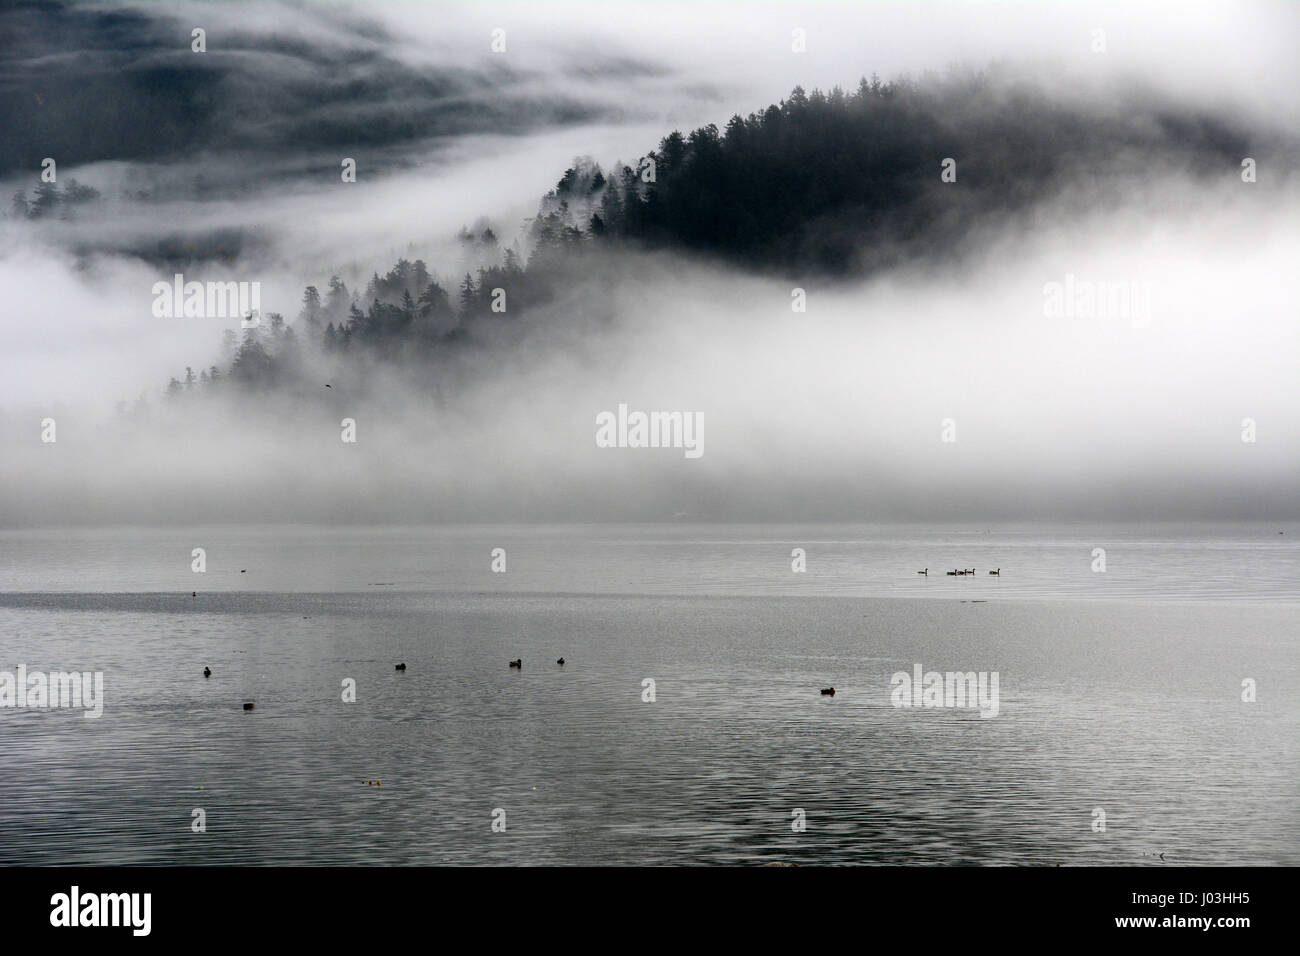 A forested mountainside is cloaked in morning mist beside the Harrison River near the town of Harrison Mills, British - Stock Image